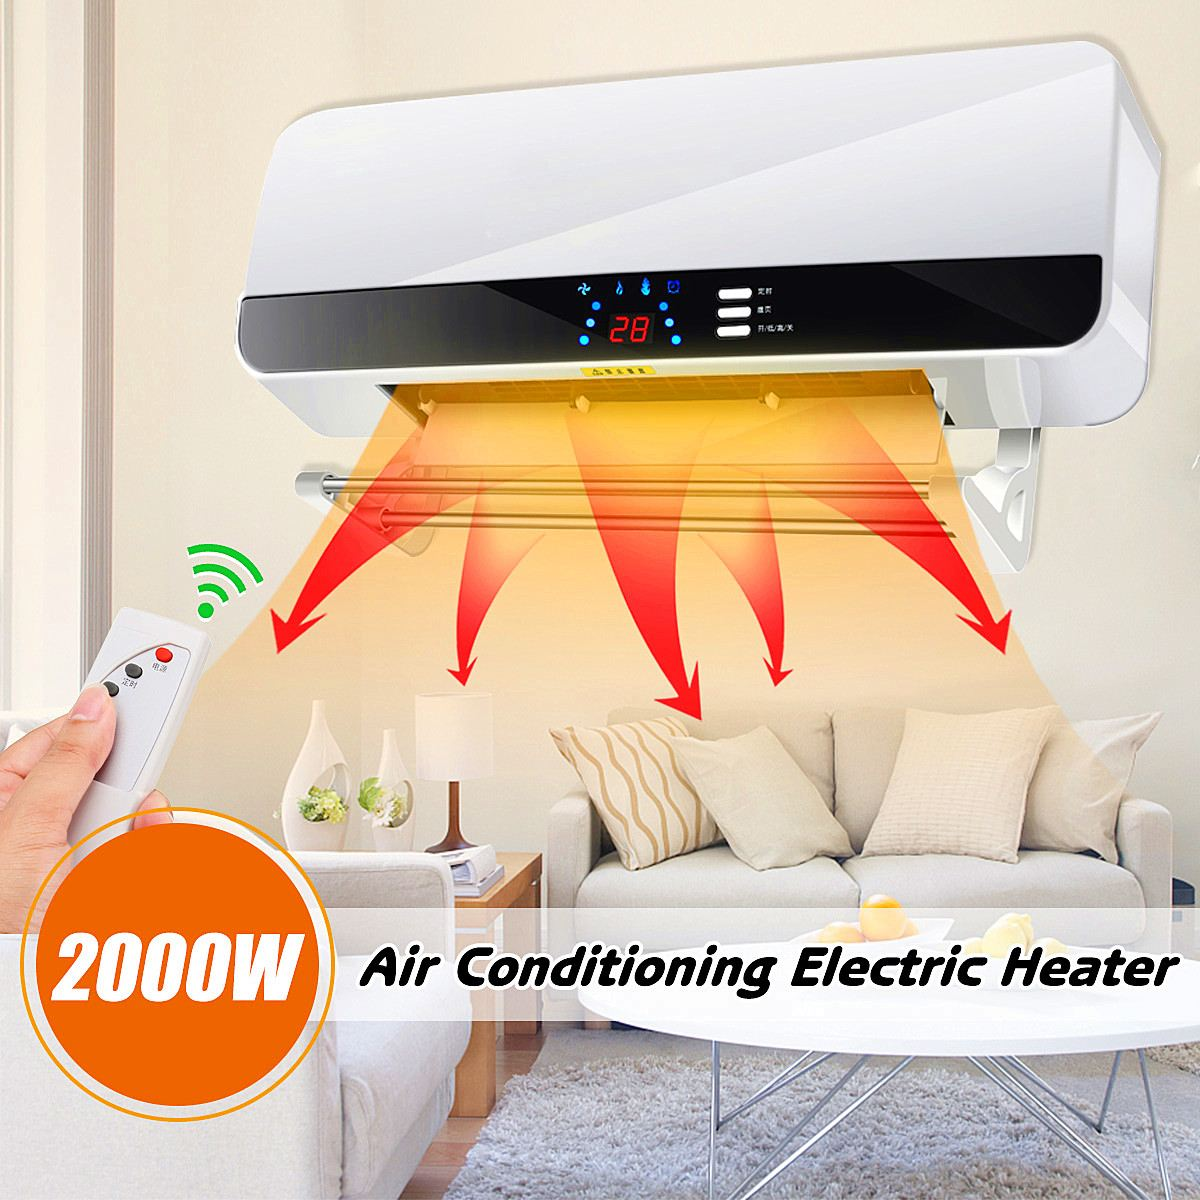 220V 2000W Air Condition Conditioning Electric Heater Wall Mounted LED display